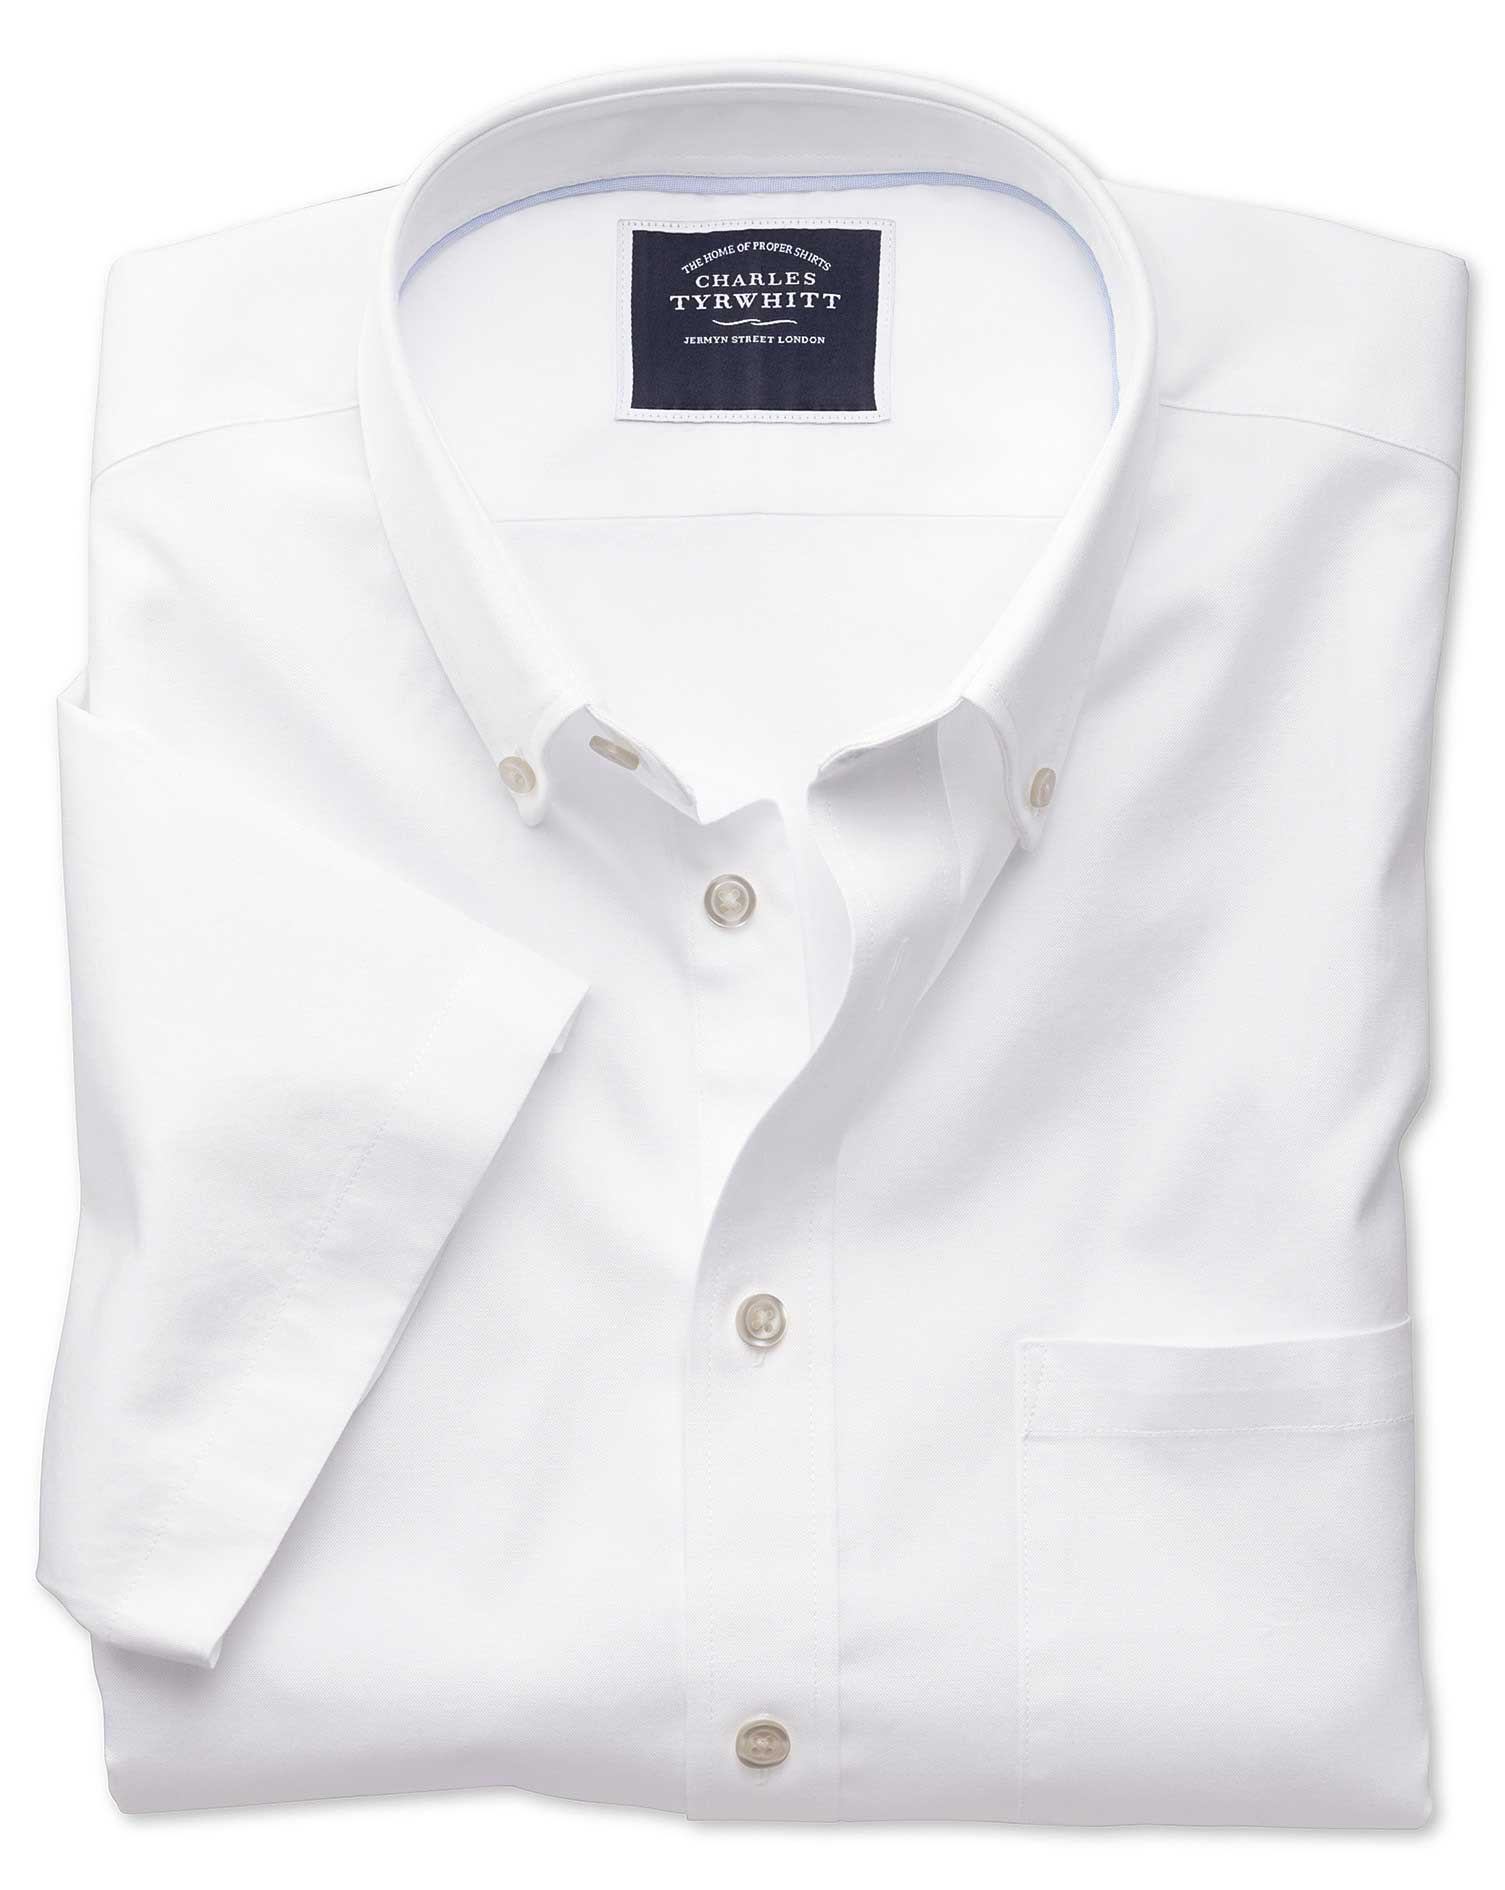 Classic Fit Button-Down Washed Oxford Short Sleeve White Cotton Shirt Single Cuff Size Small by Char